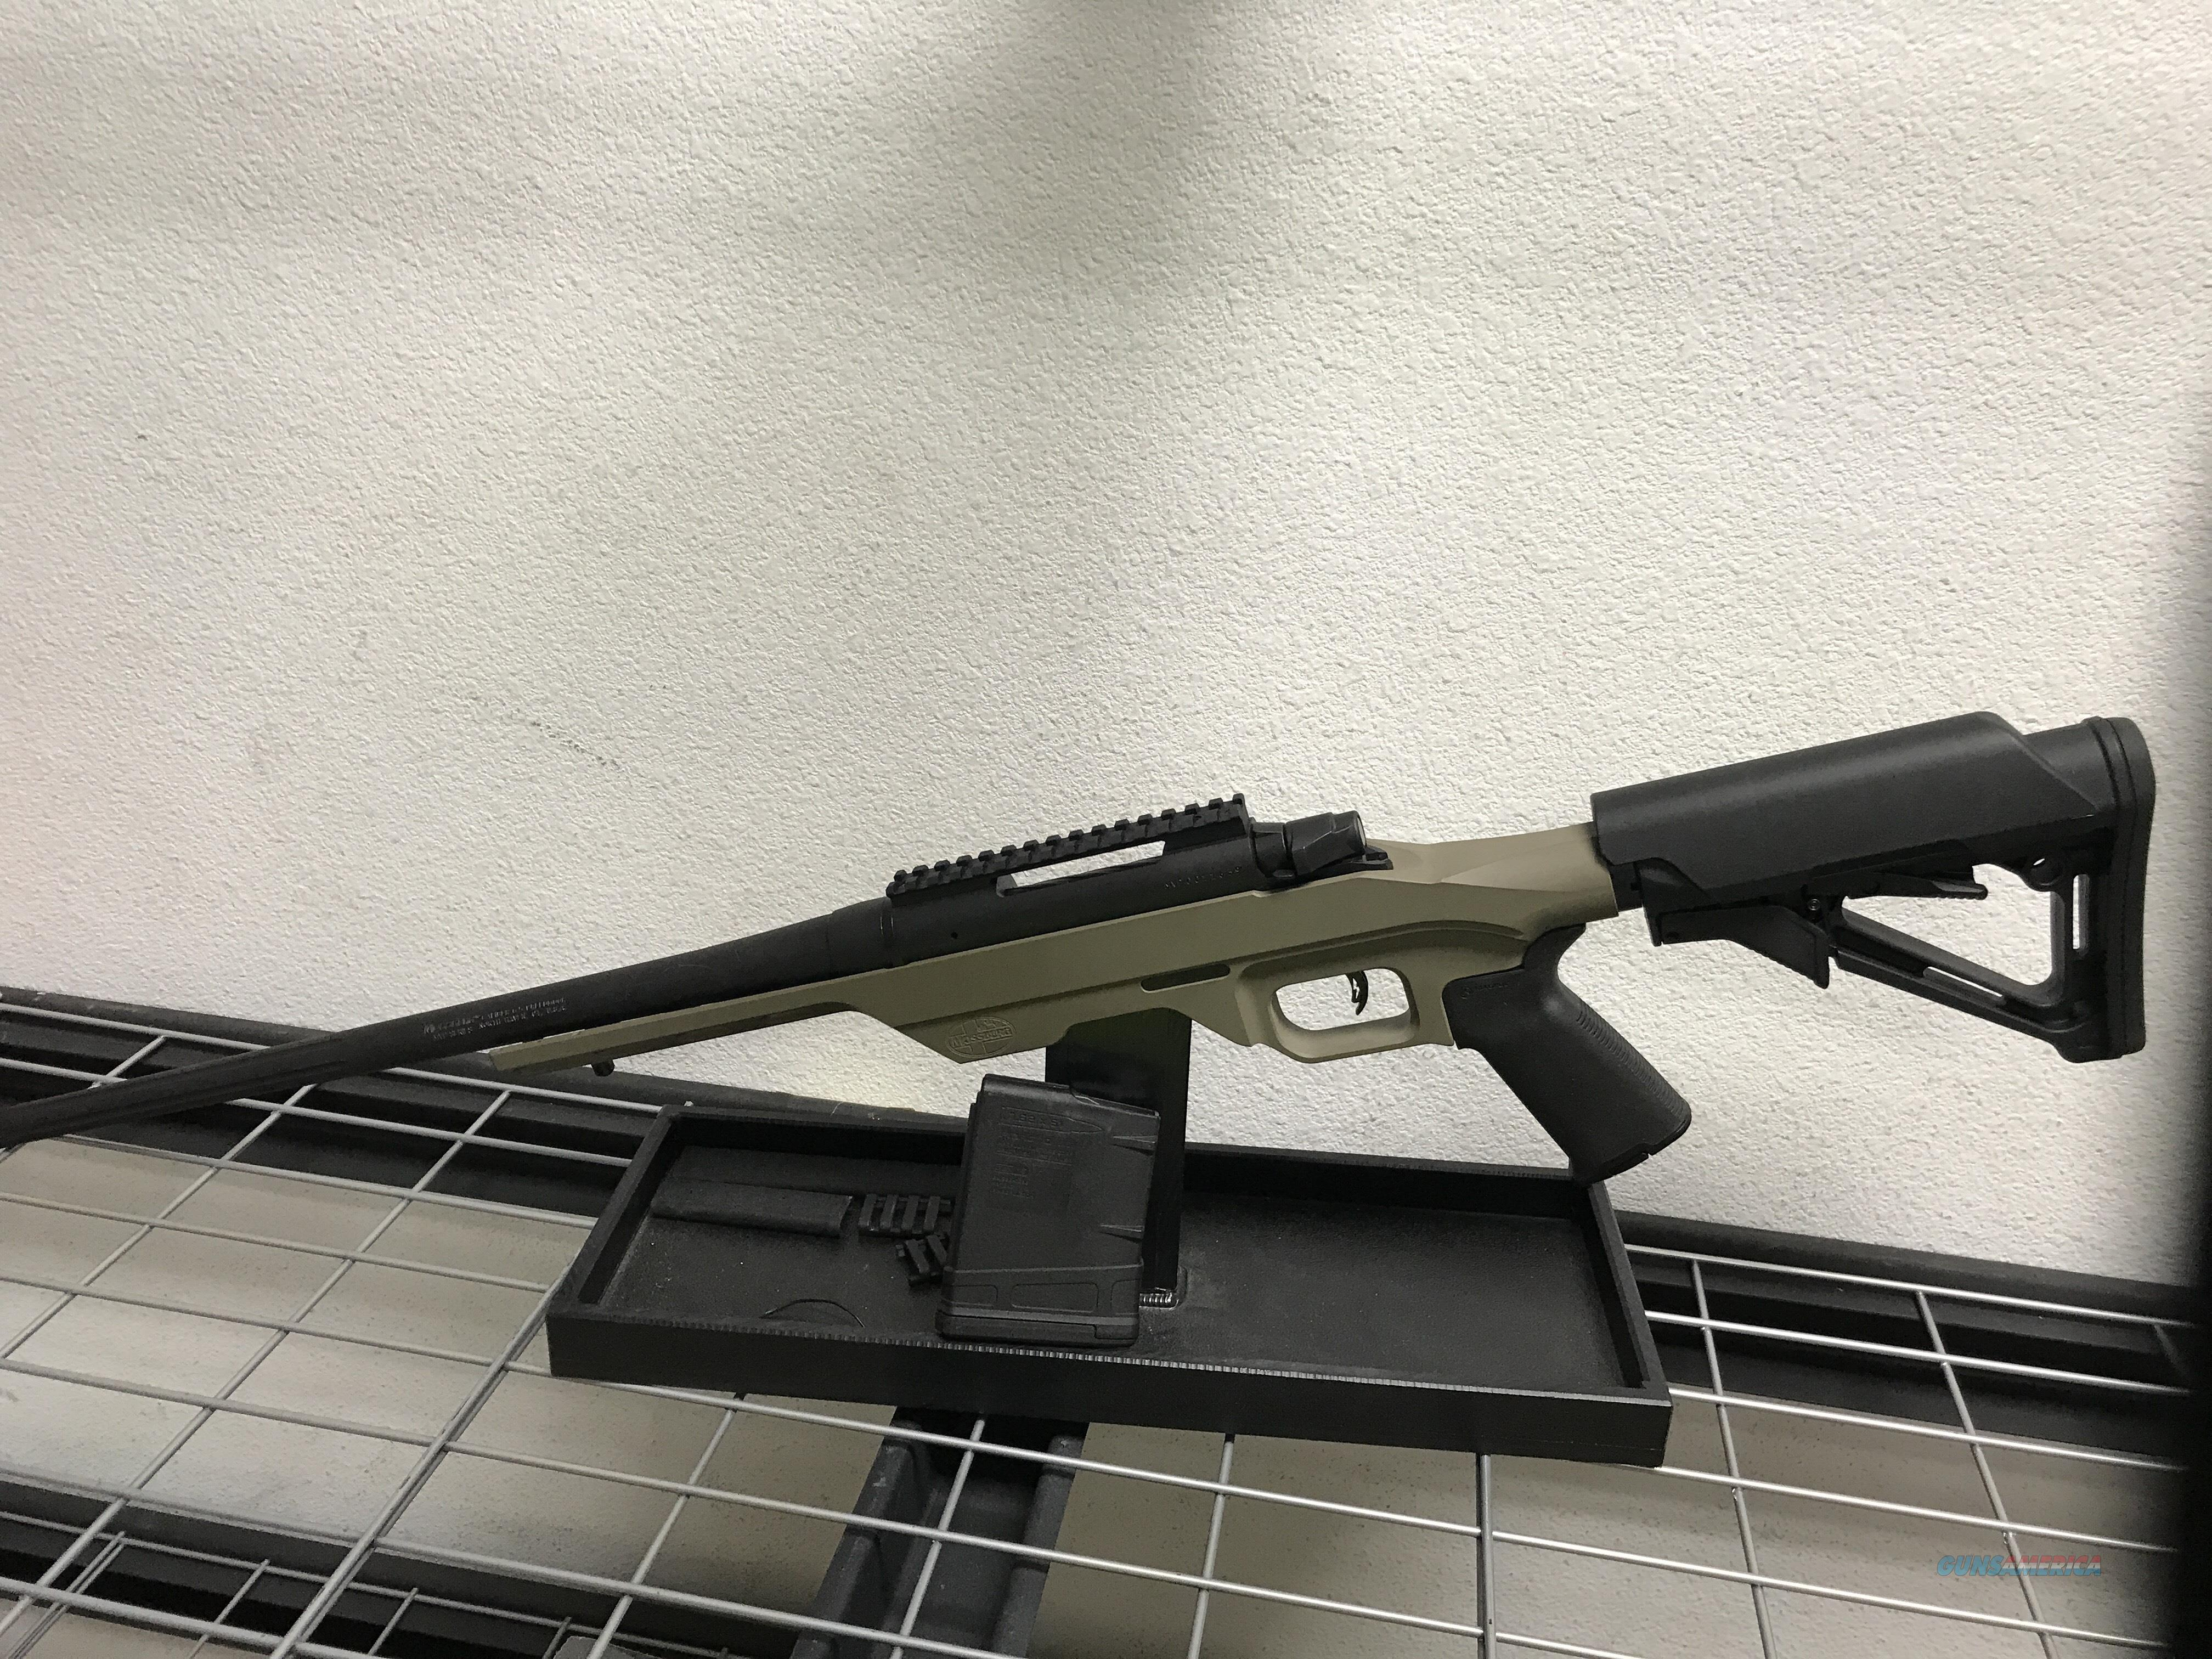 MOSSBERG MVP LIGHT         FREE SHIPPING  Guns > Rifles > Mossberg Rifles > MVP